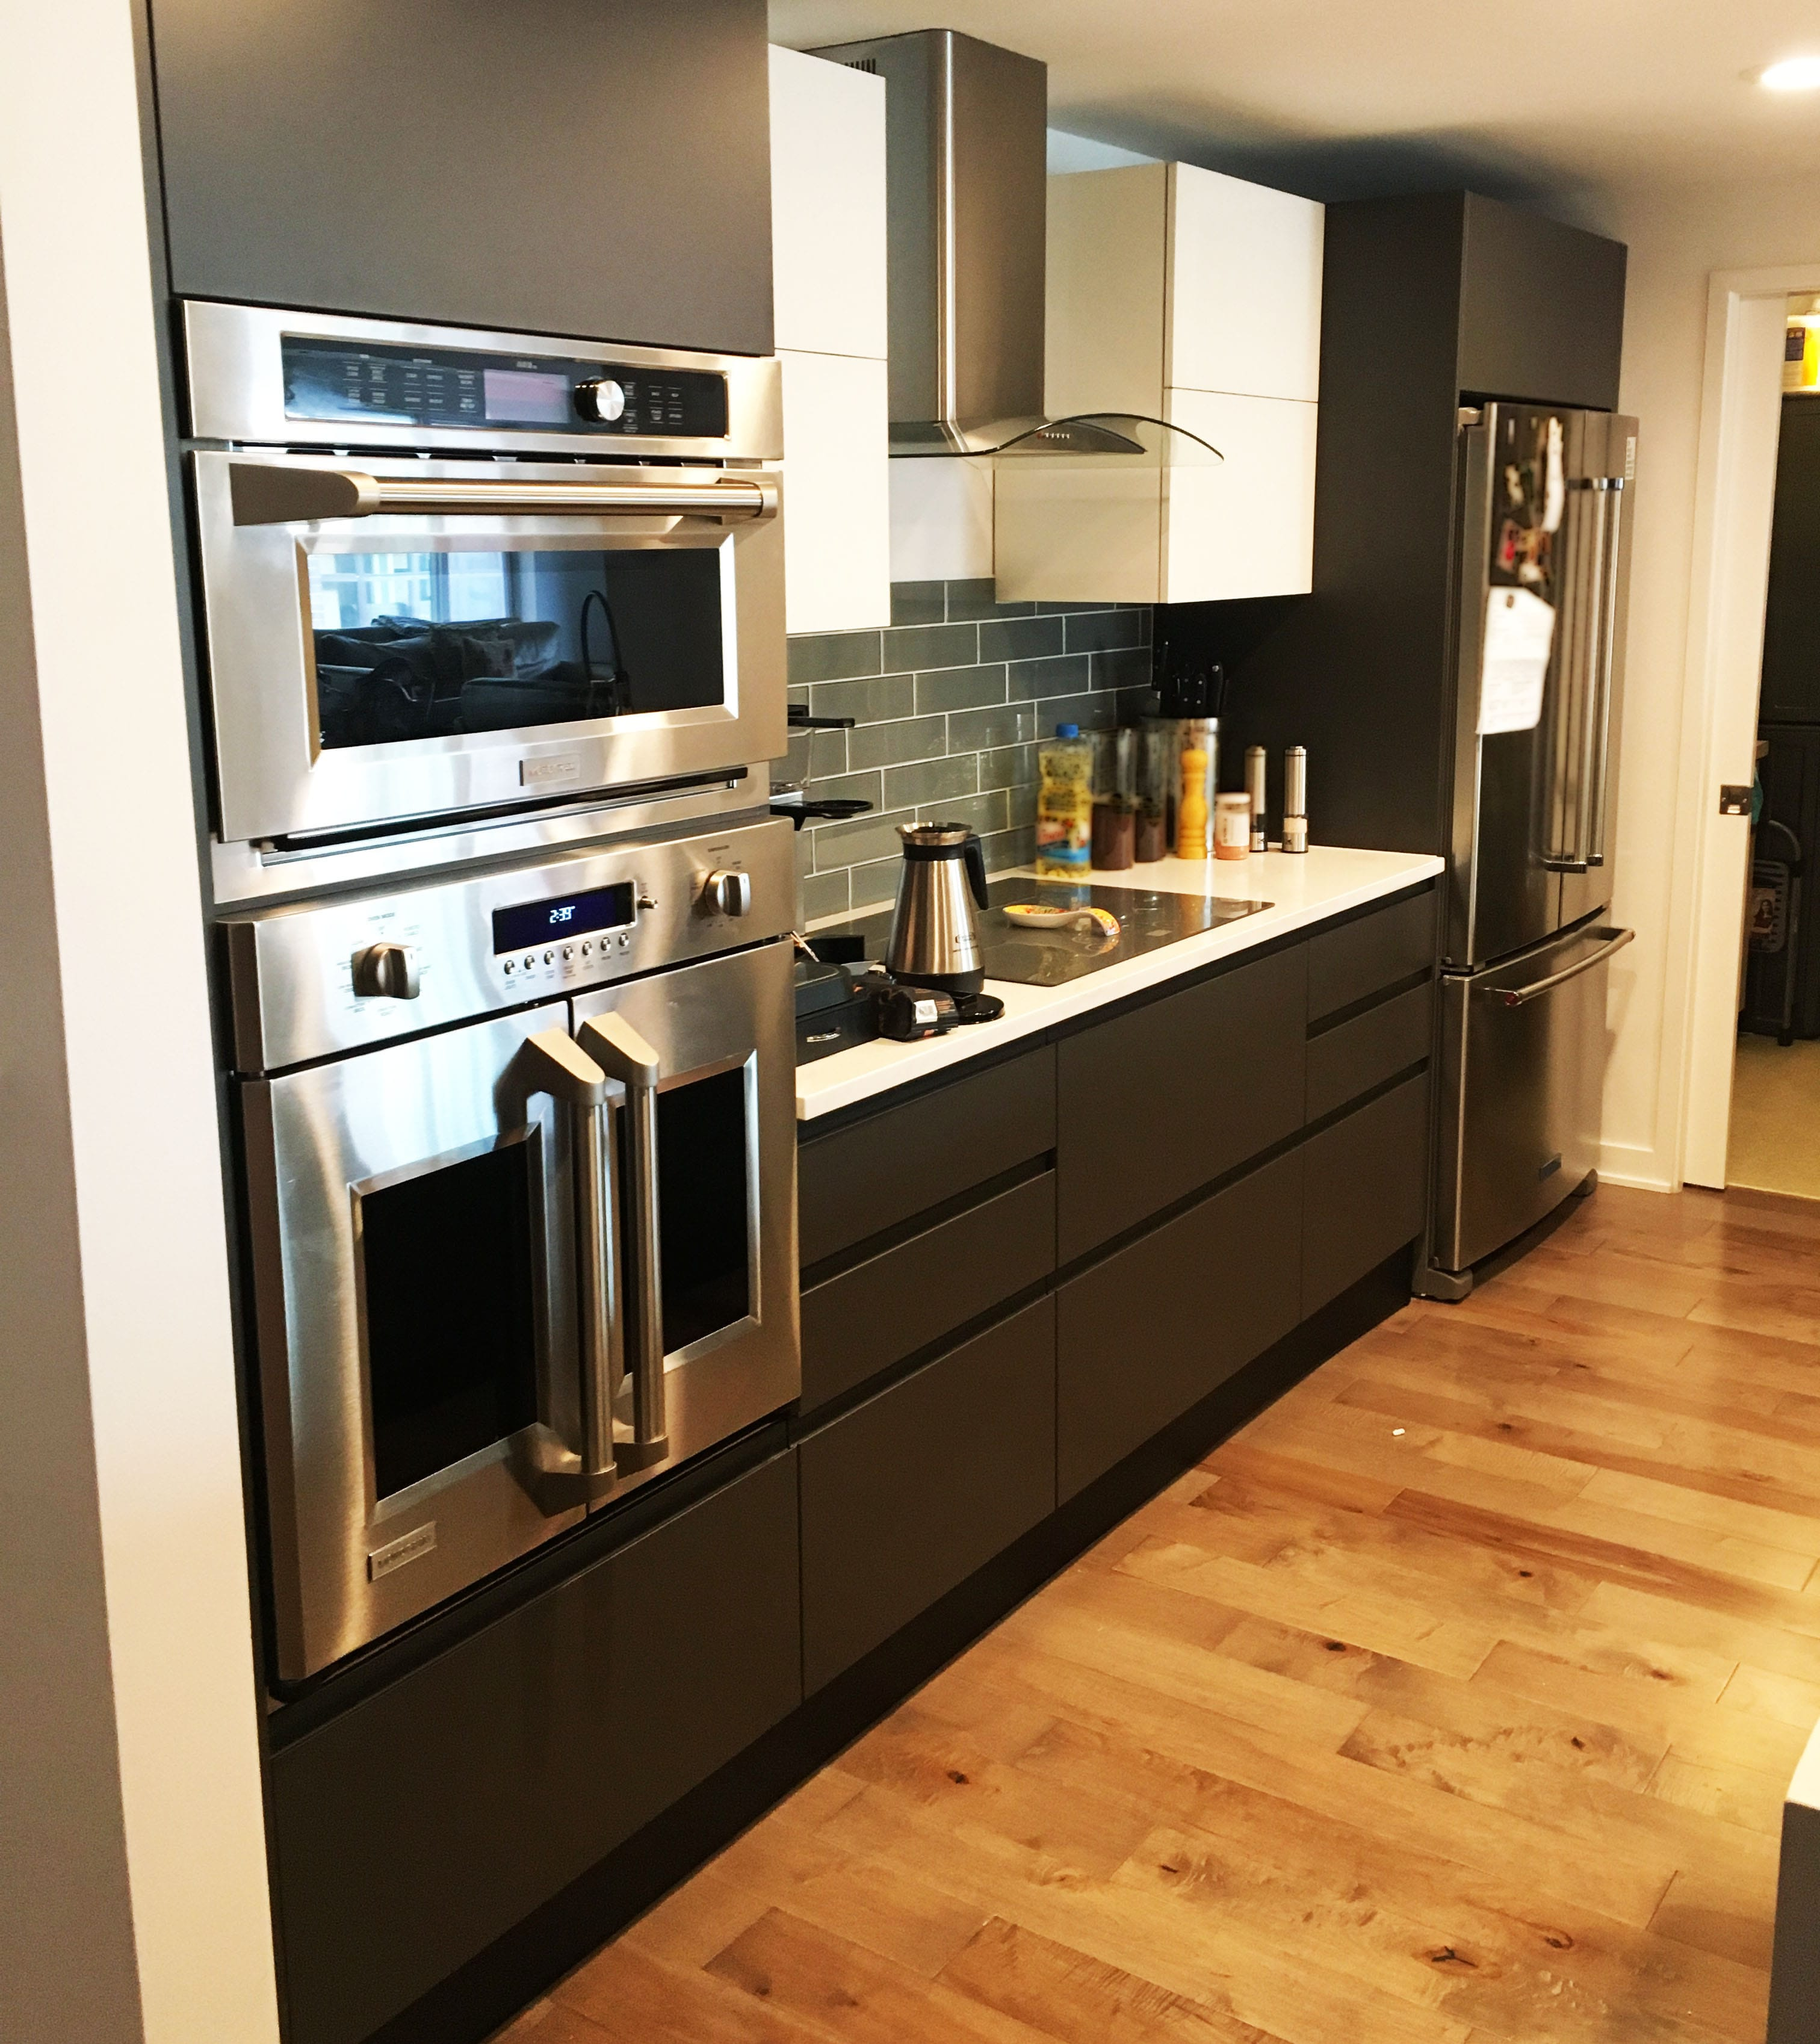 Updated Kitchen using Solid Black Cabinetry, Stainless-Steel Appliances, and Refinished Hardwood Floor